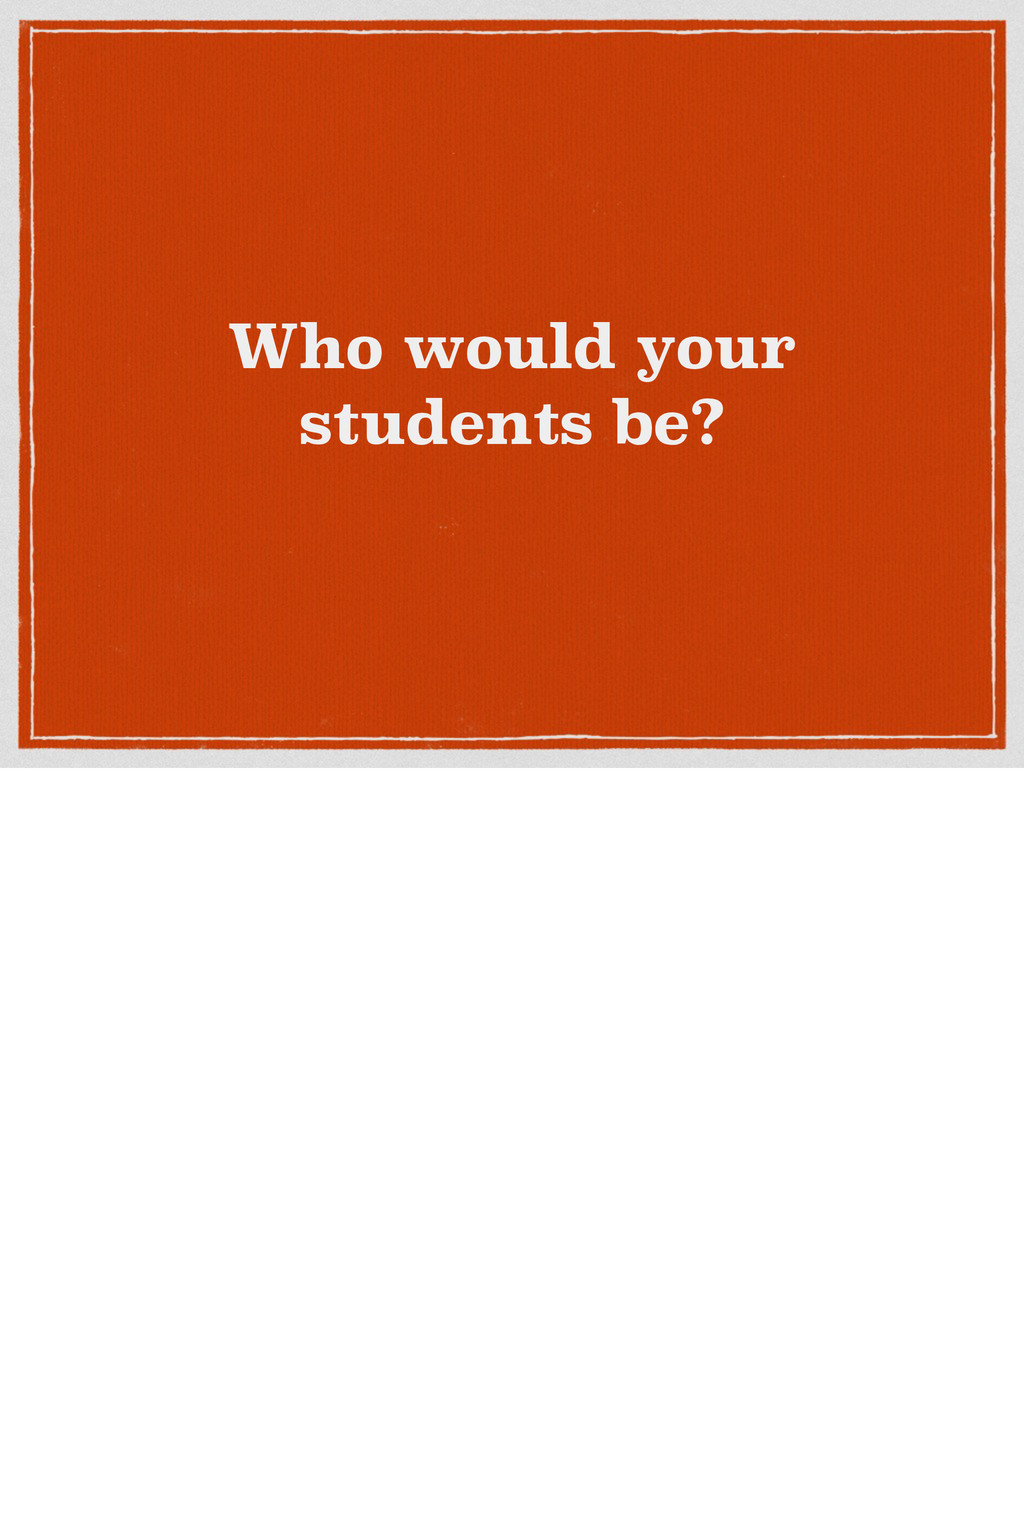 Who would your students be?